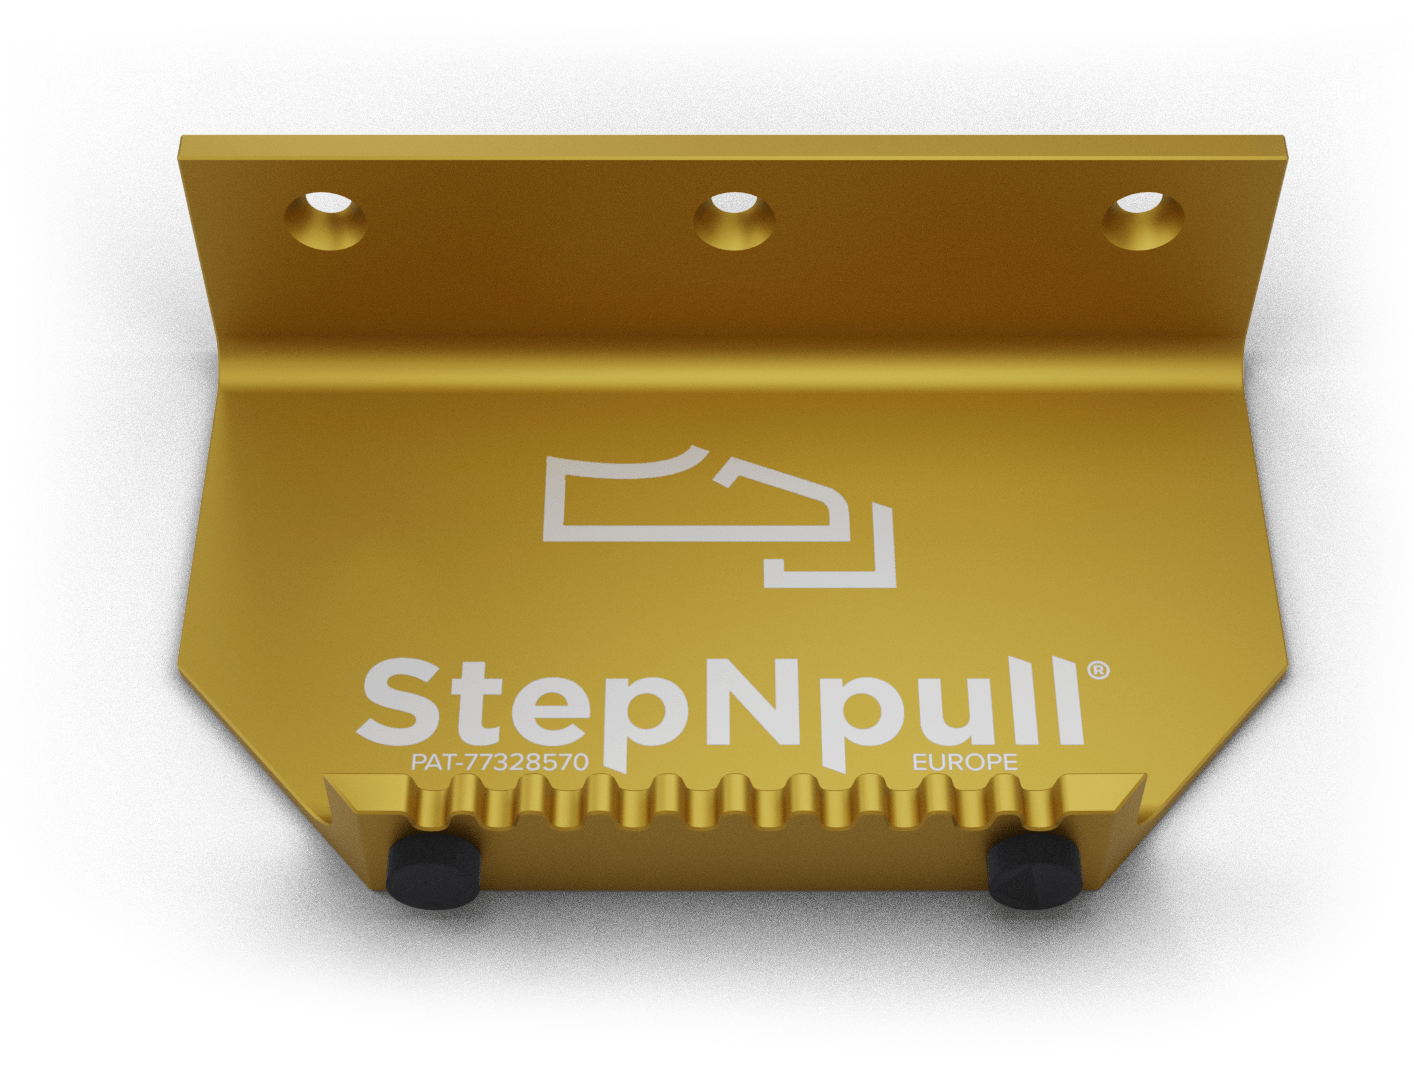 stepnpull the foot handle and hands free door opener golden branded product image